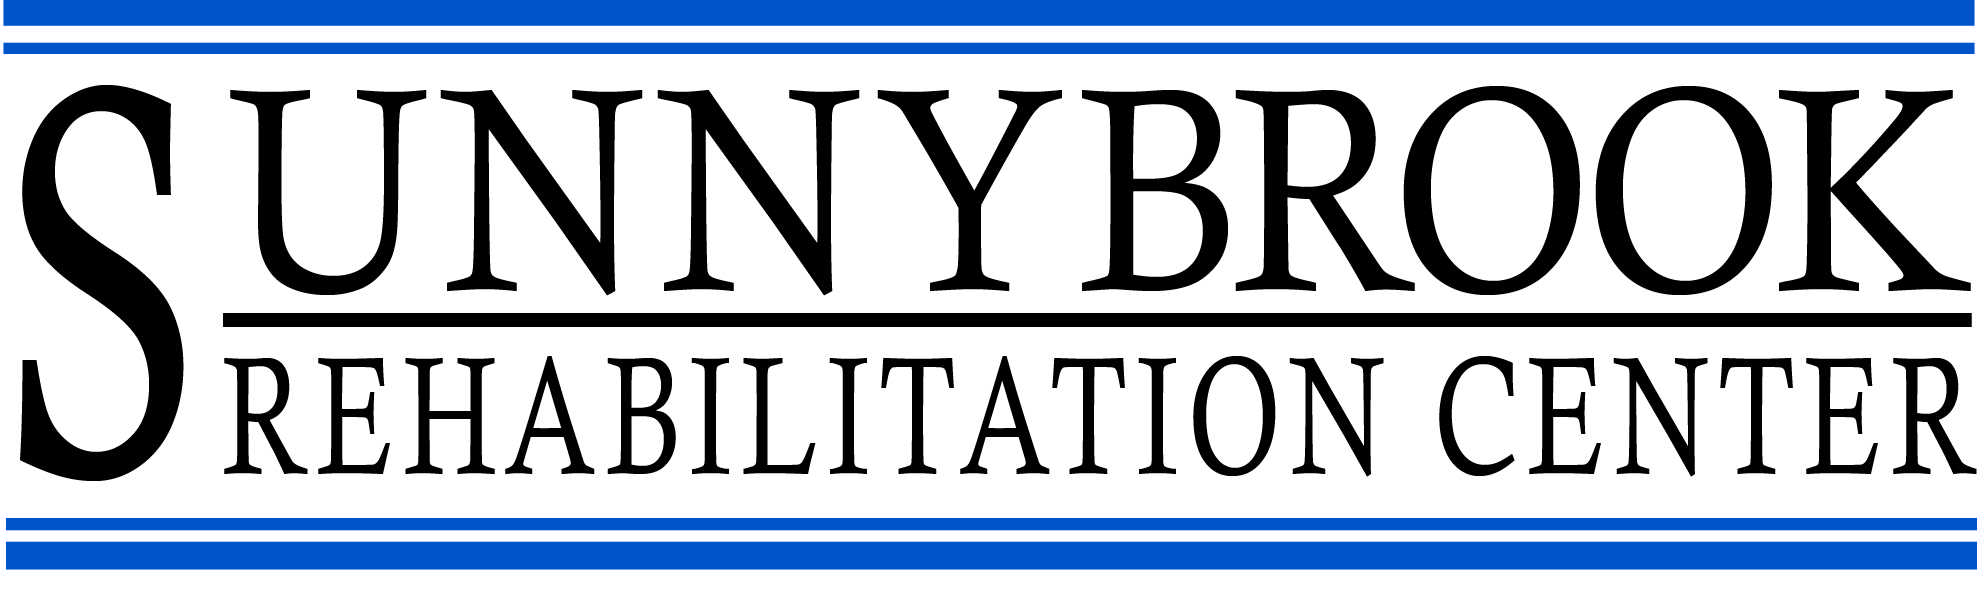 Sunnybrook Rehabilitation Center logo